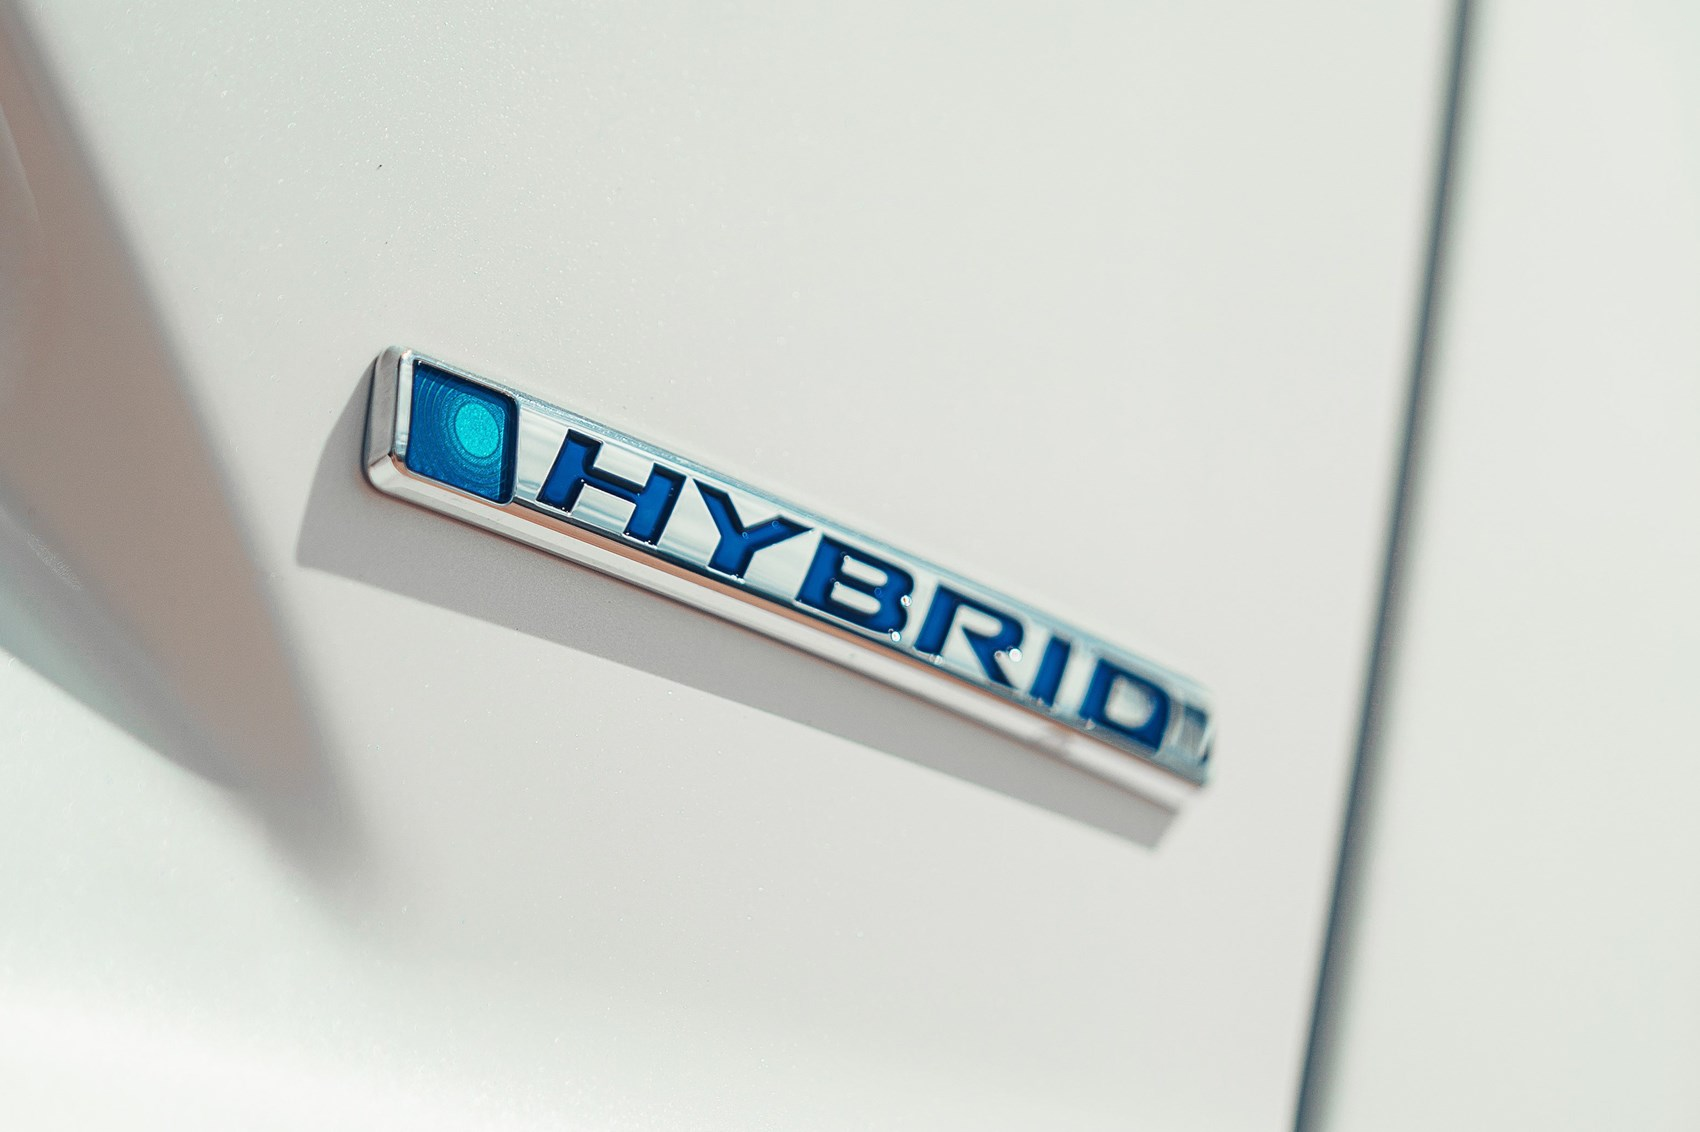 Honda CR-V Hybrid badge